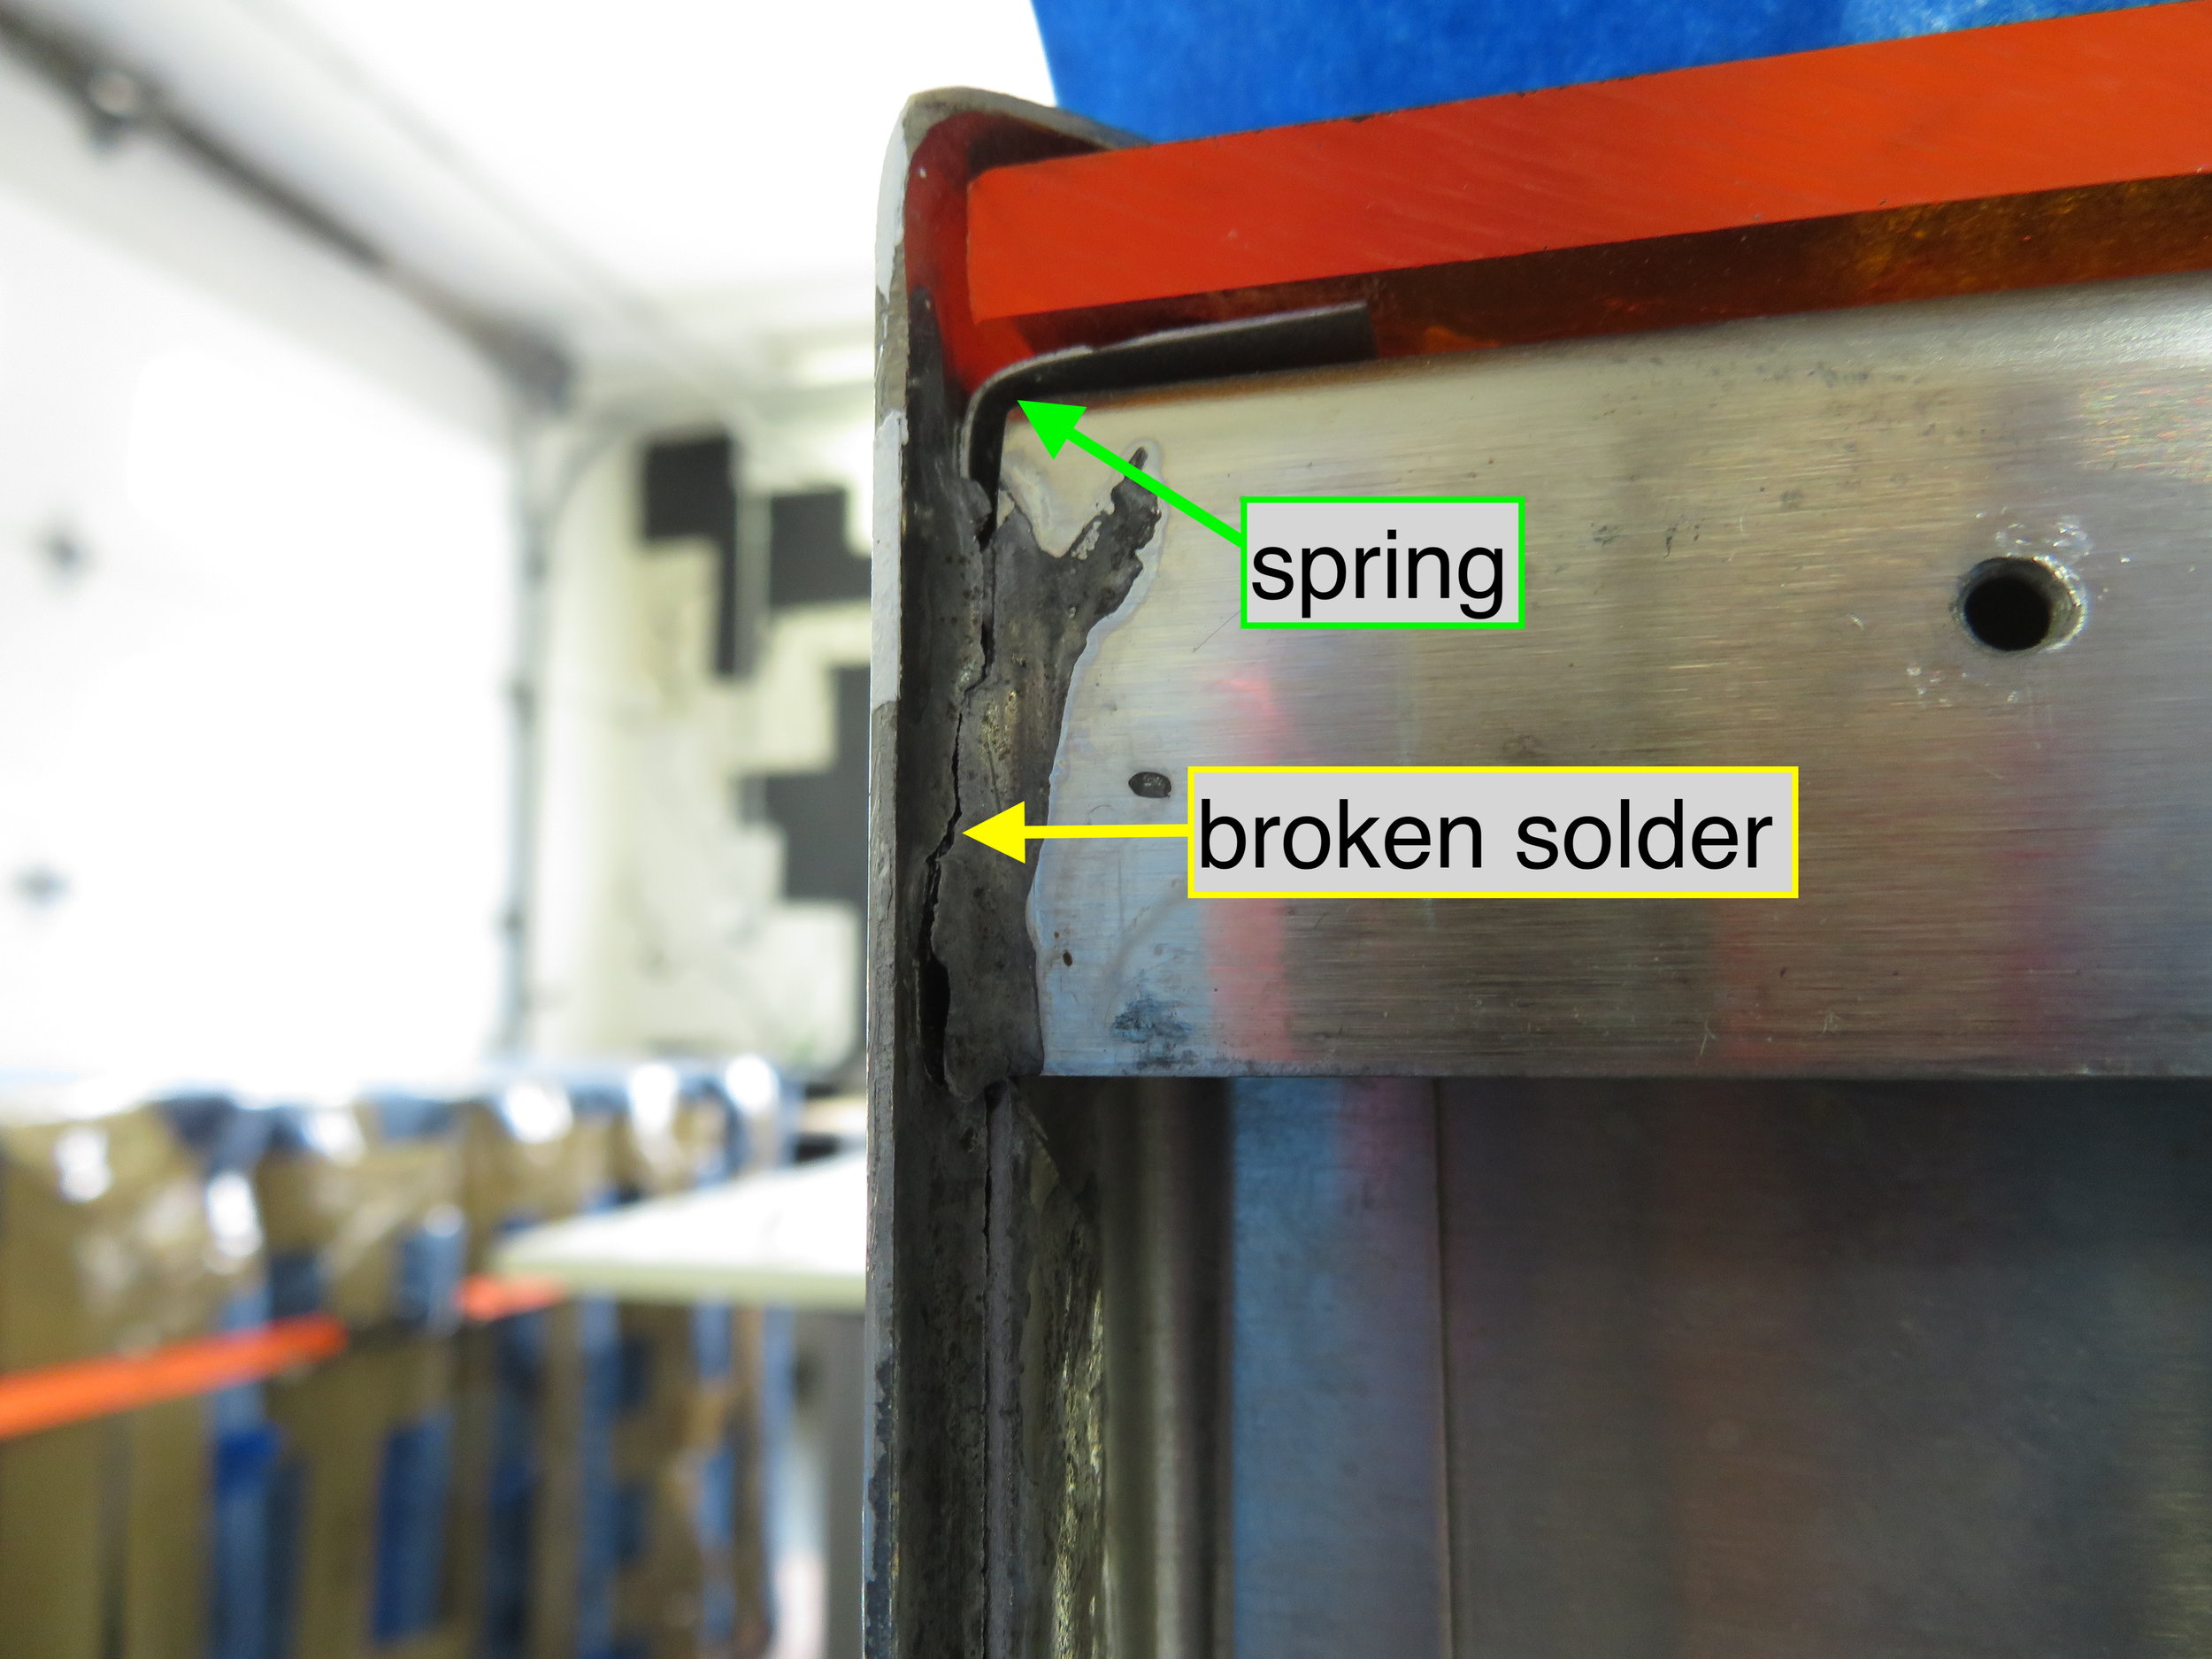 Spring holding acrylic in place and broken solder join